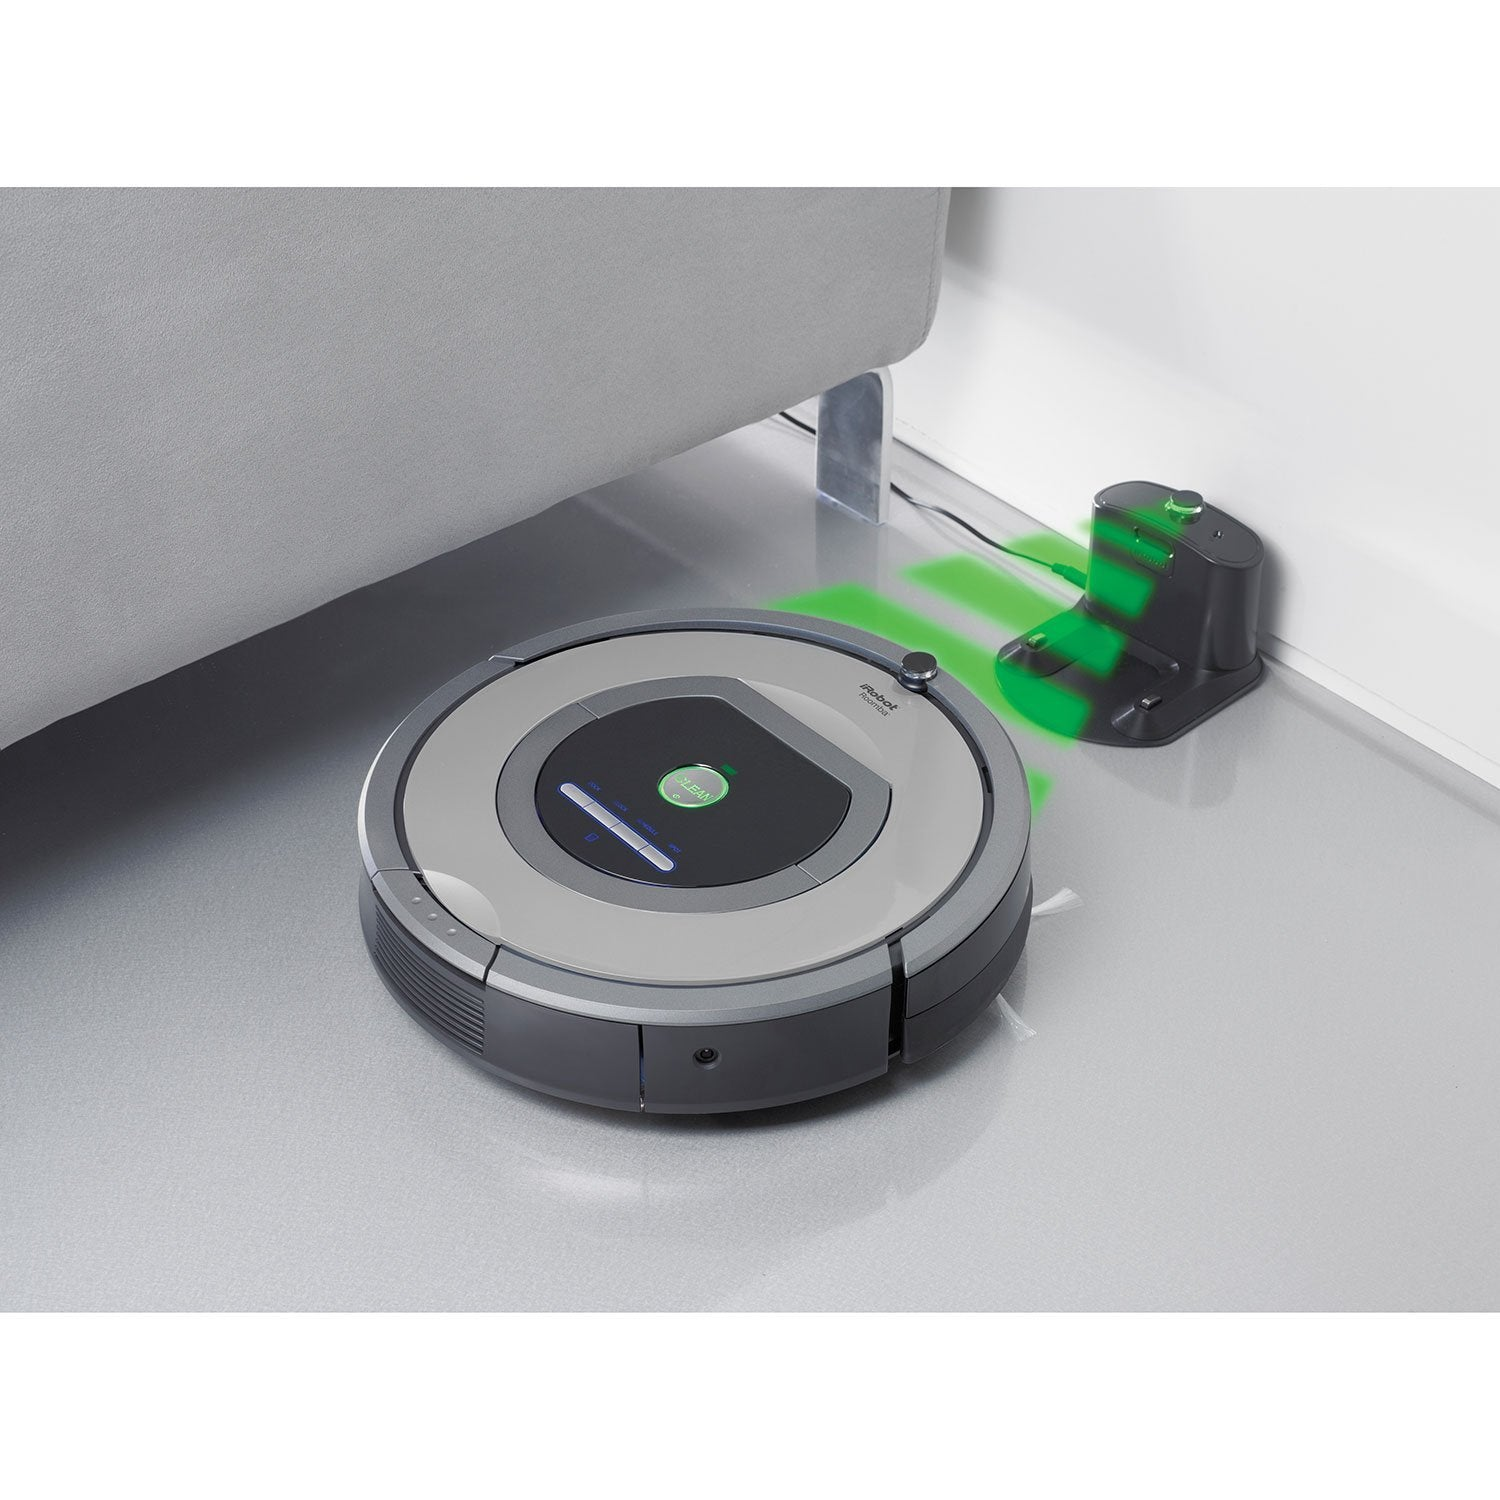 Irobot Braava 320 Floor Mopping Robot Watch Carpet